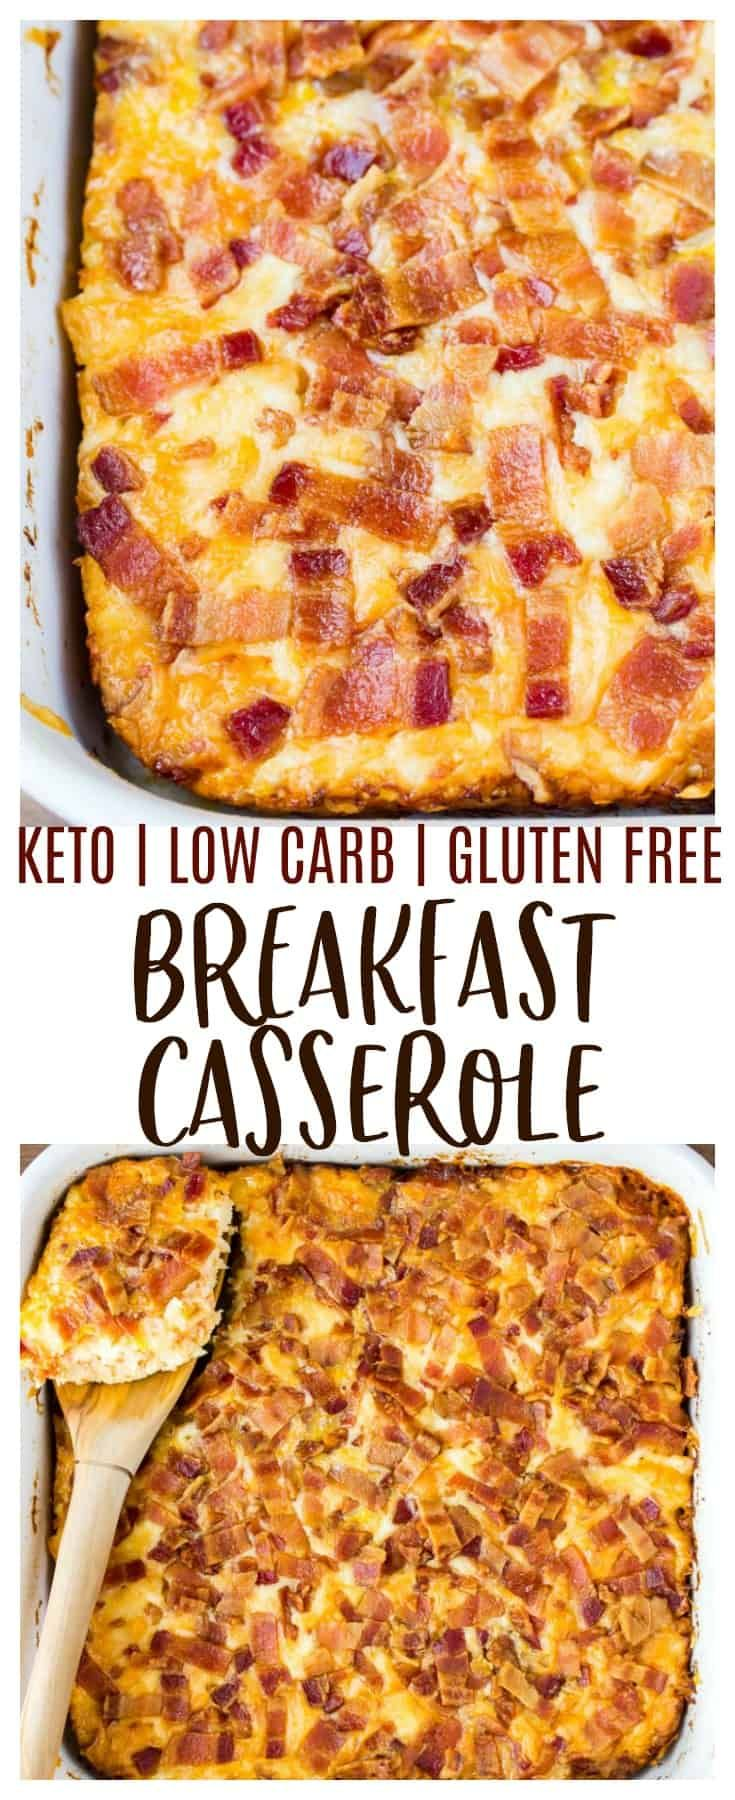 Keto Breakfast Casserole with Bacon, Cauliflower, and Cheese